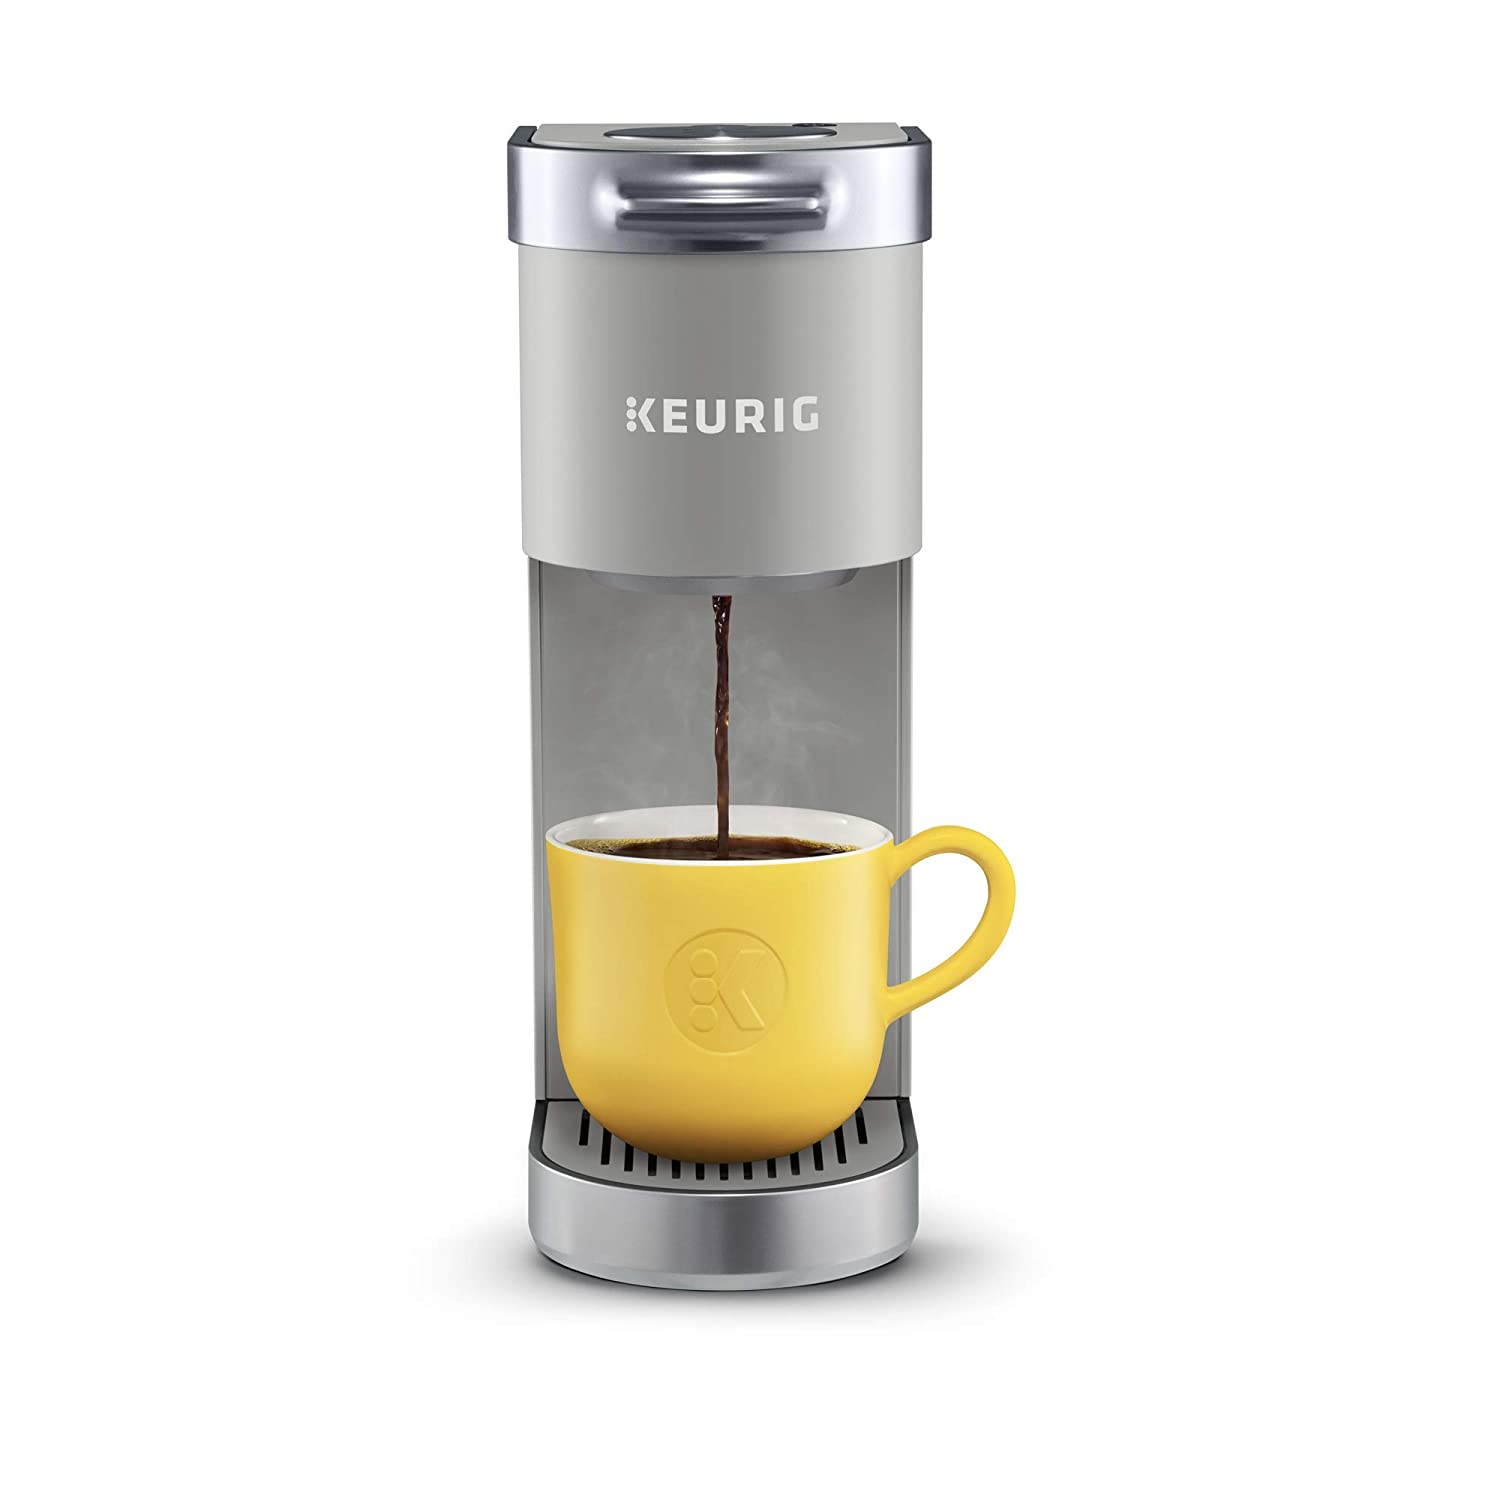 Keurig K-Mini Plus Single Serve Coffee Maker, with 6 to 12oz Brew Size, Stores up to 9 K-Cup Pods,Travel Mug Friendly Studio Gray